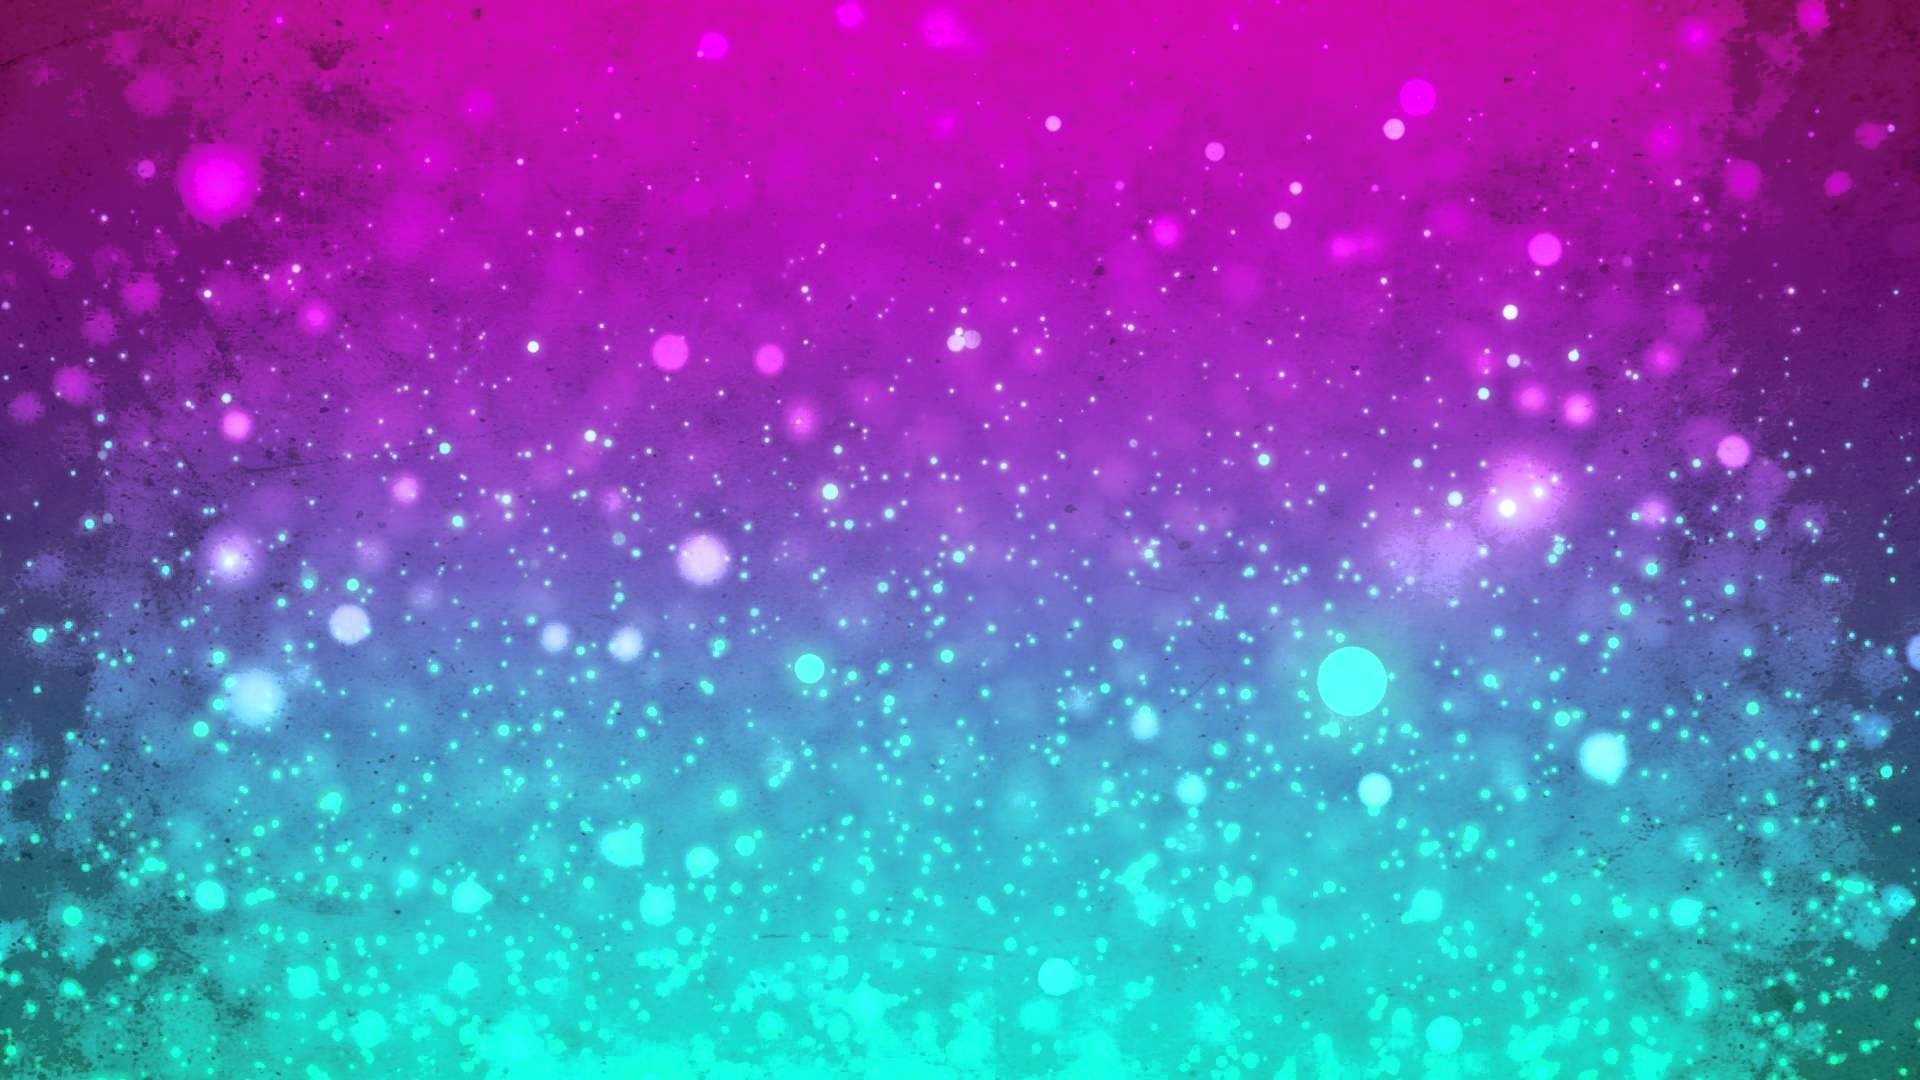 Kawaii-Charm images Sparkly Wallpaper HD wallpaper and background photos